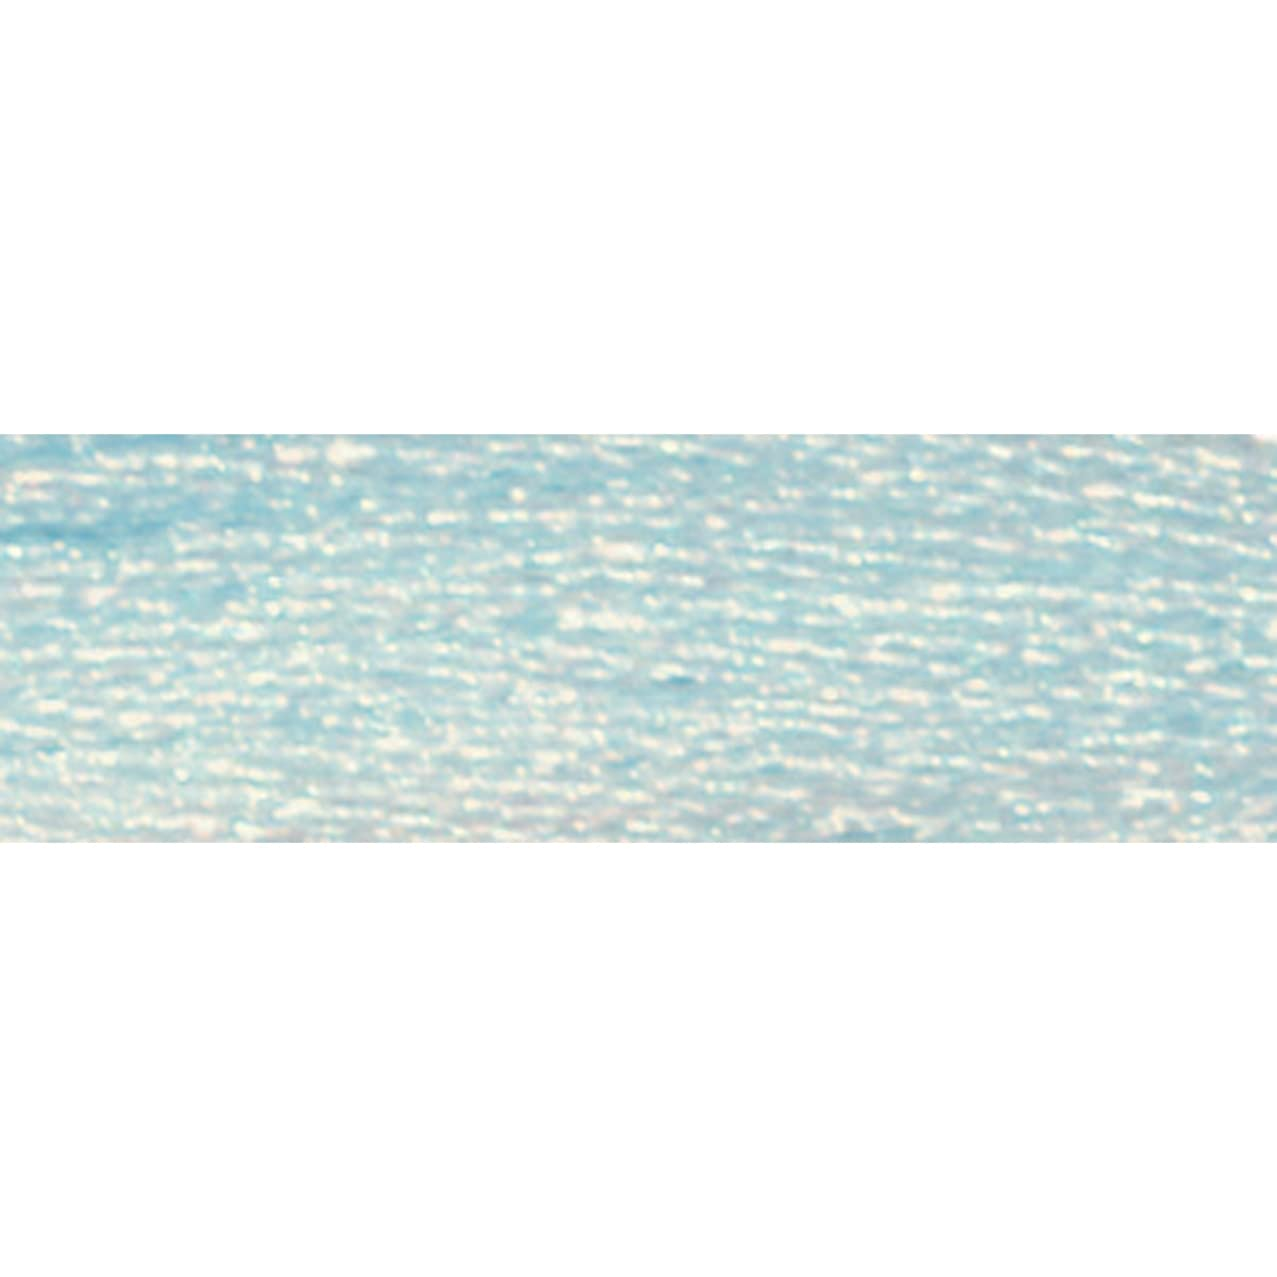 DMC 317W-E747 Light Effects Polyster Embroidery Floss, 8.7-Yard, Baby Blue